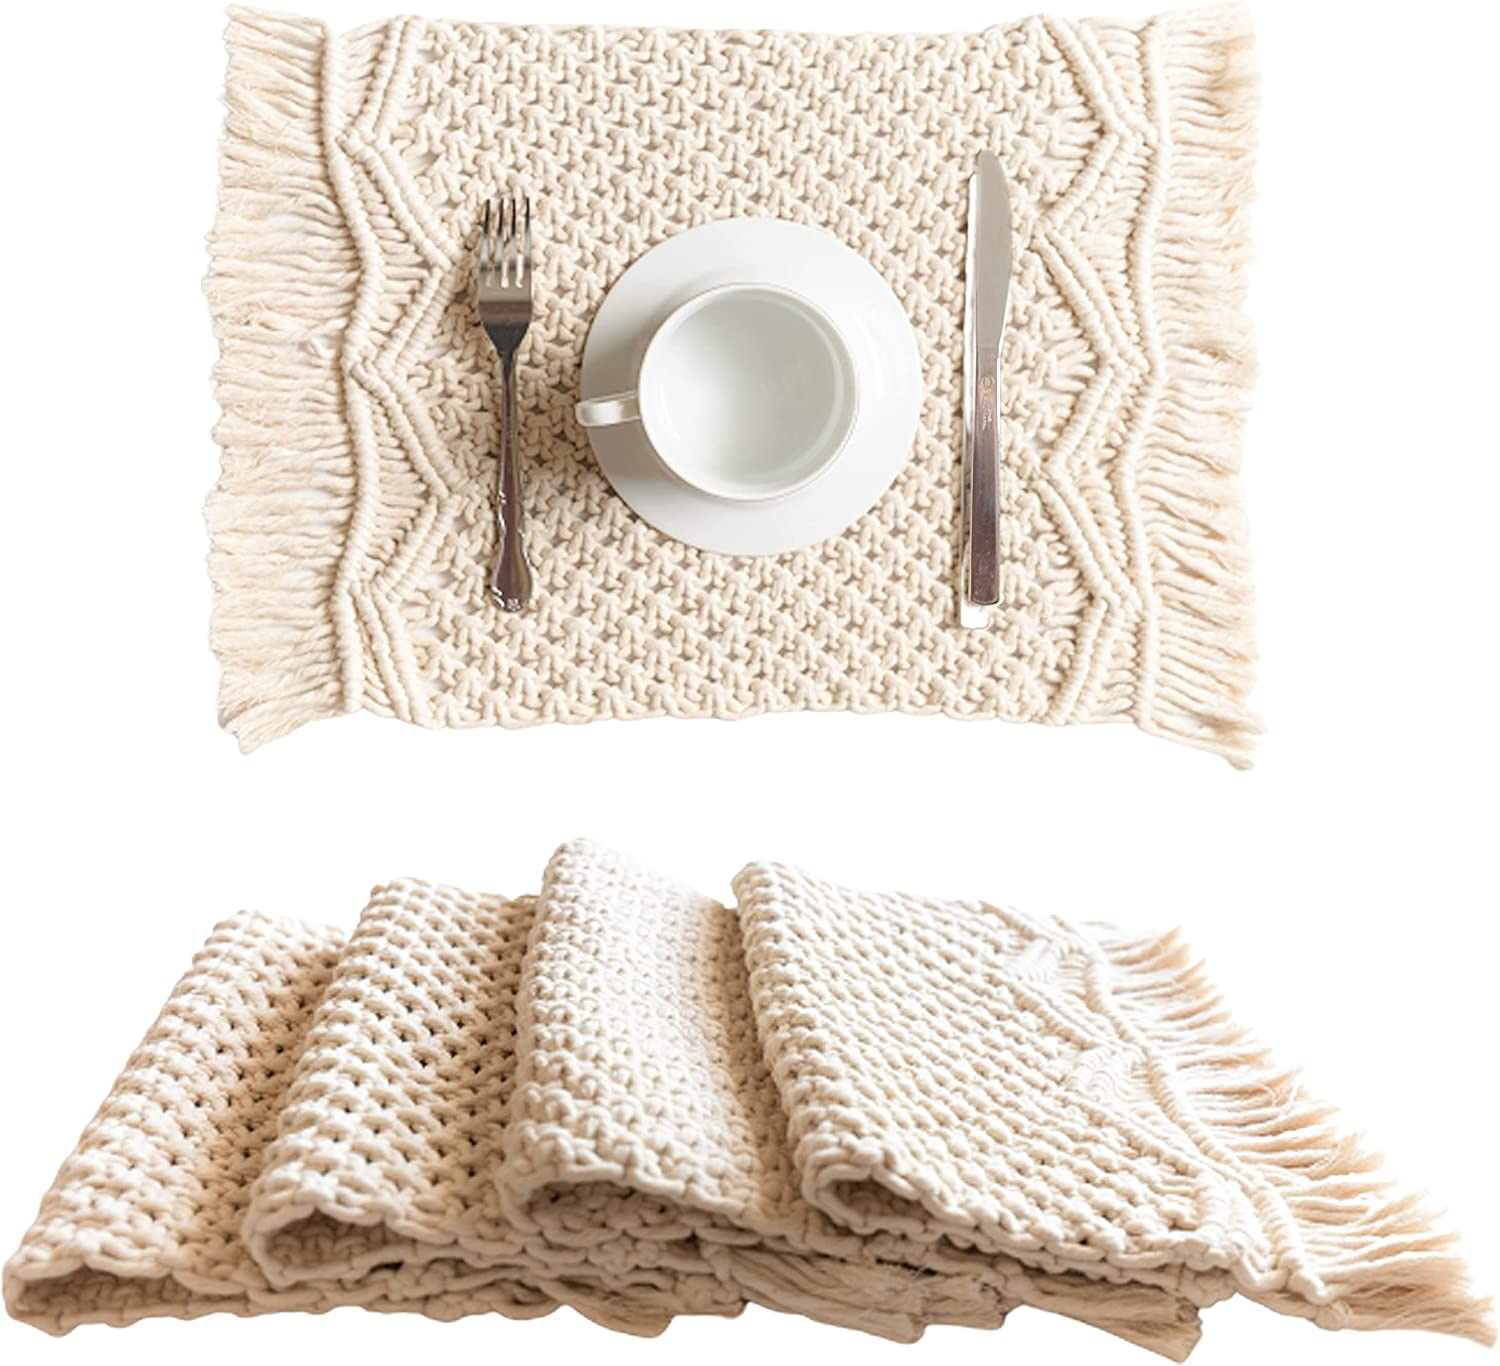 """SnugLife Macrame Placemats Set of 4 - Handmade Cotton Woven Boho Placemats - Modern Farmhouse Fringe Placemats for Dining Table, Kitchen, Bohemian Wedding Décor, Rustic Natural Off White, 12""""x18"""""""